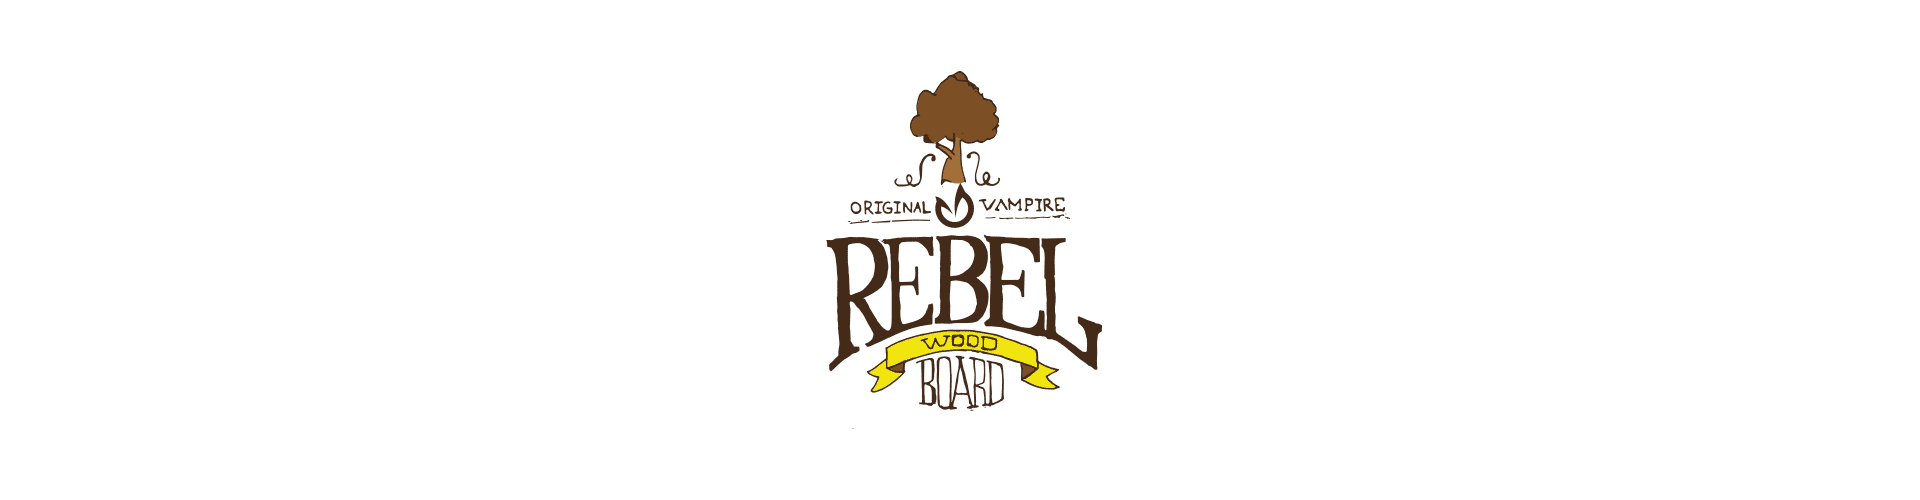 Vampire Boards - Rebel 2014 Graphic Design / Logo Design